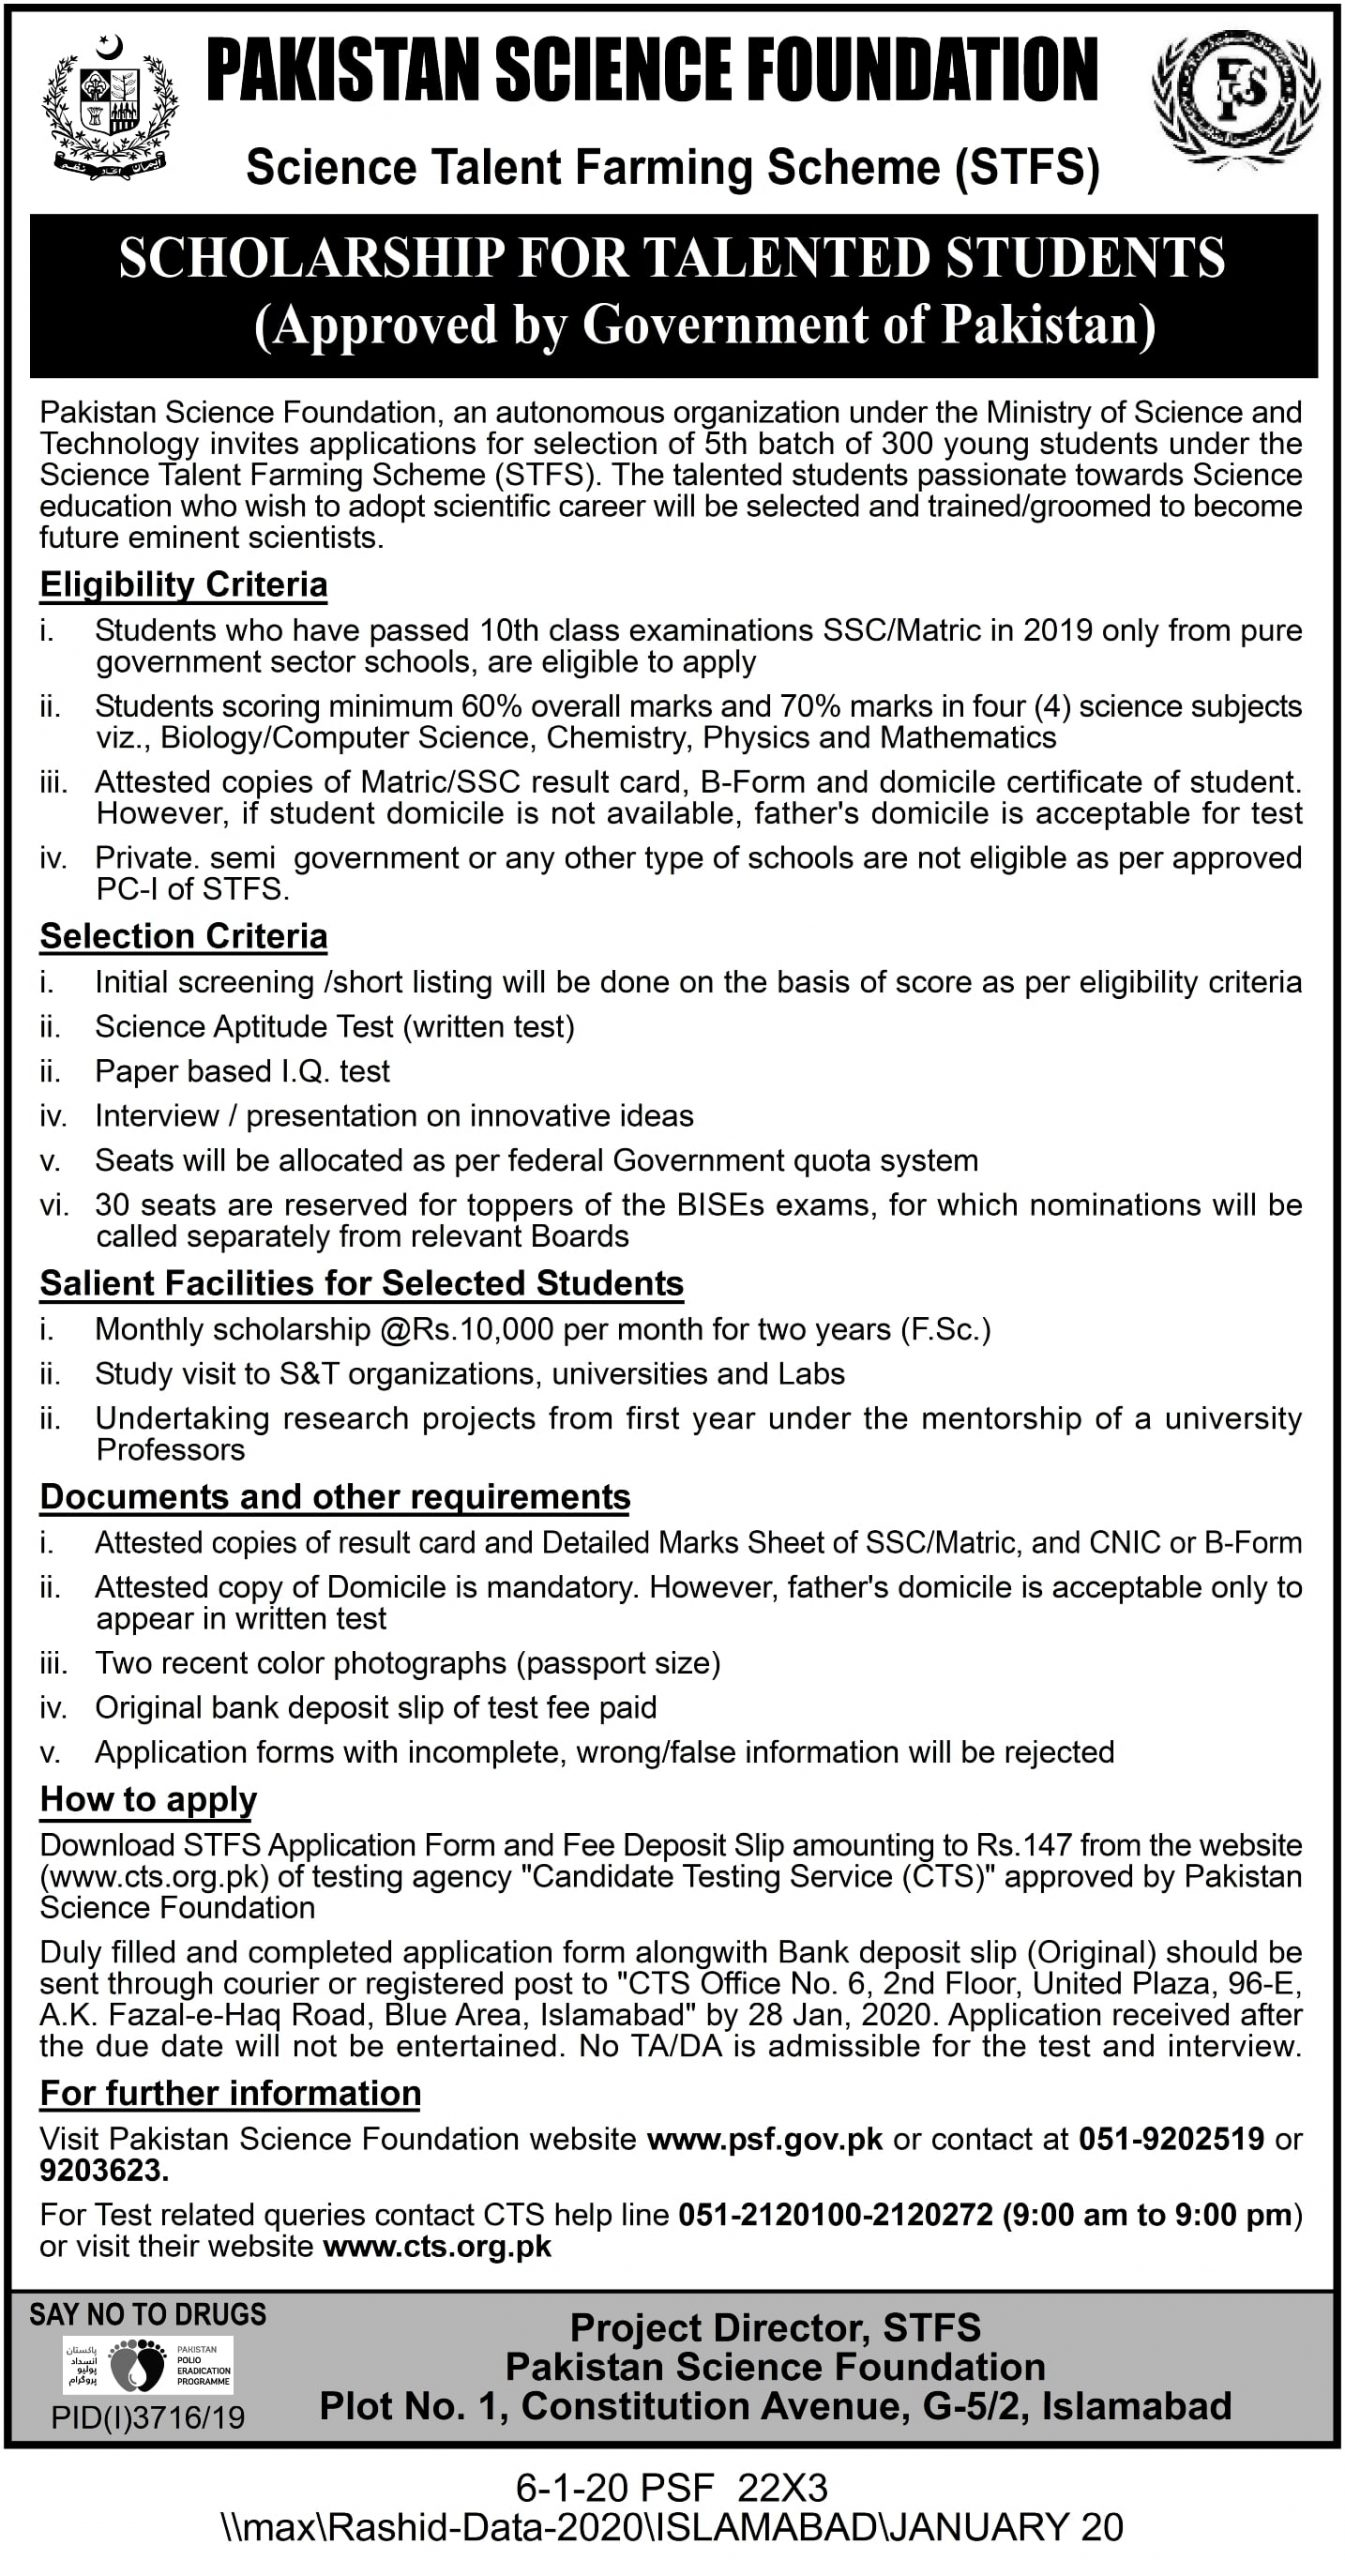 Pakistan Science Foundation Scholarships STFS 5th Batch CTS Result